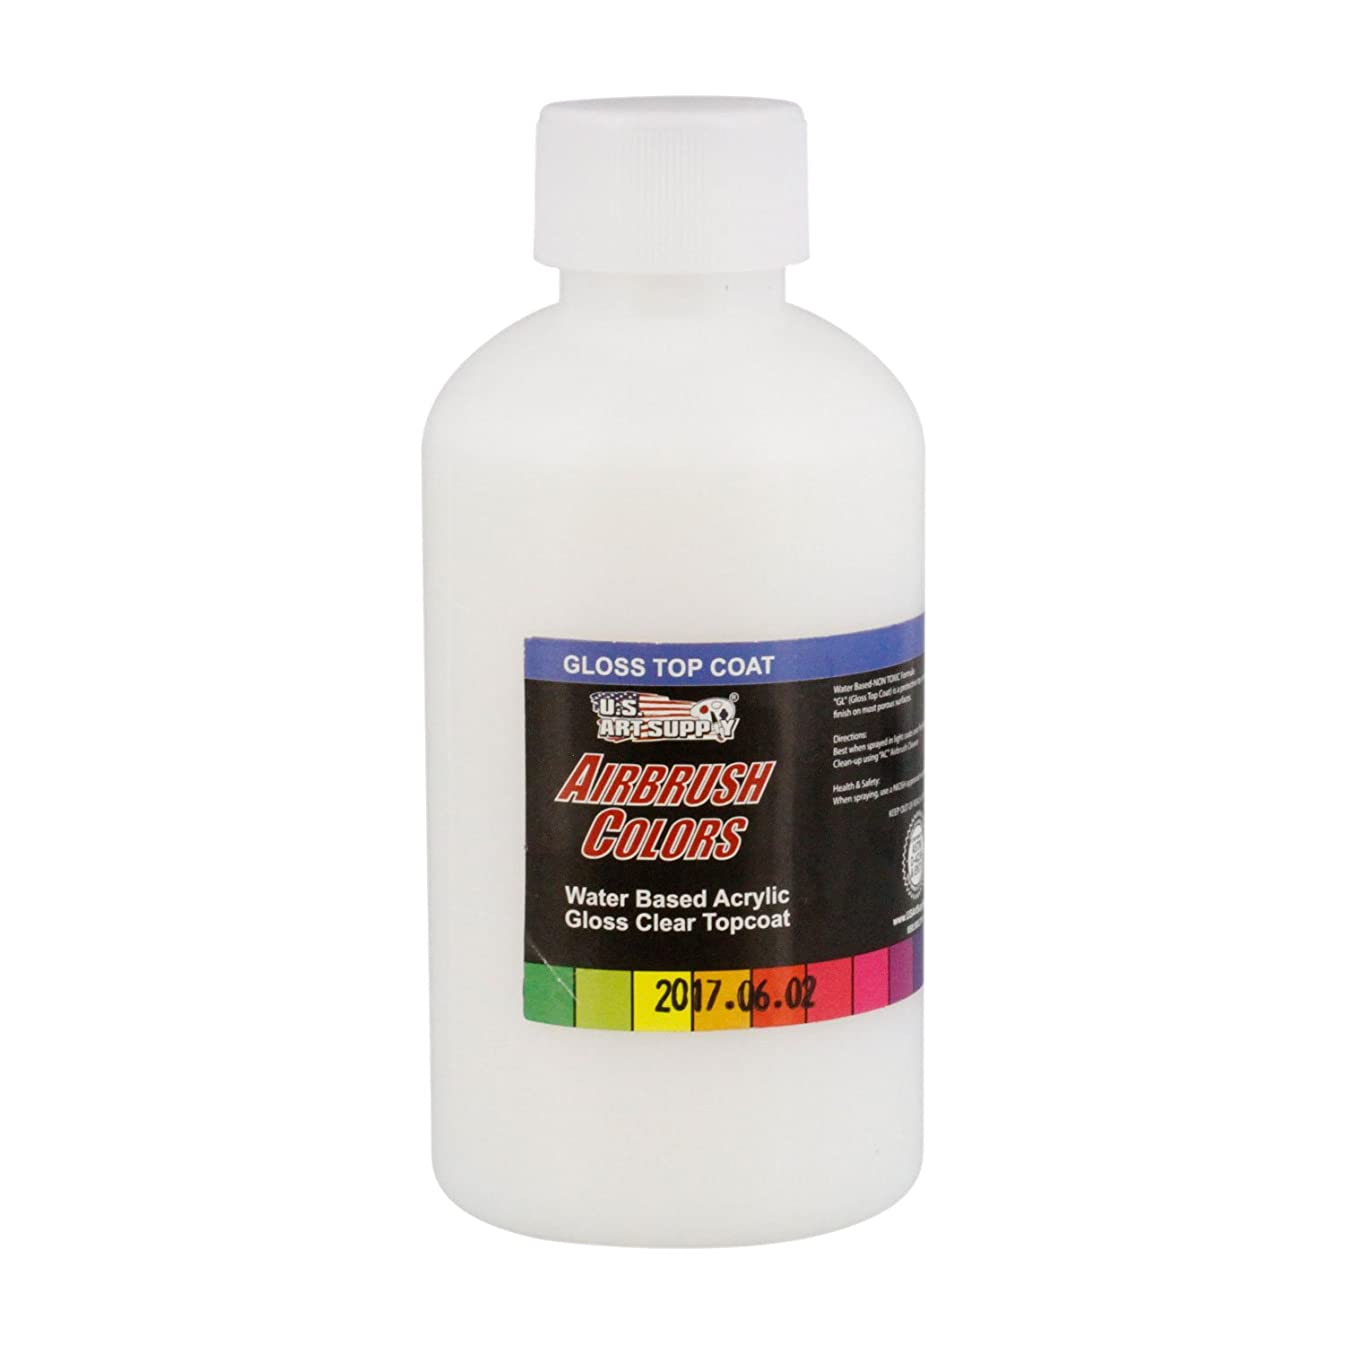 US Art Supply Clear Gloss Topcoat Acrylic Airbrush Paint, 8 oz. also excellent as a Gloss Pouring Medium blender